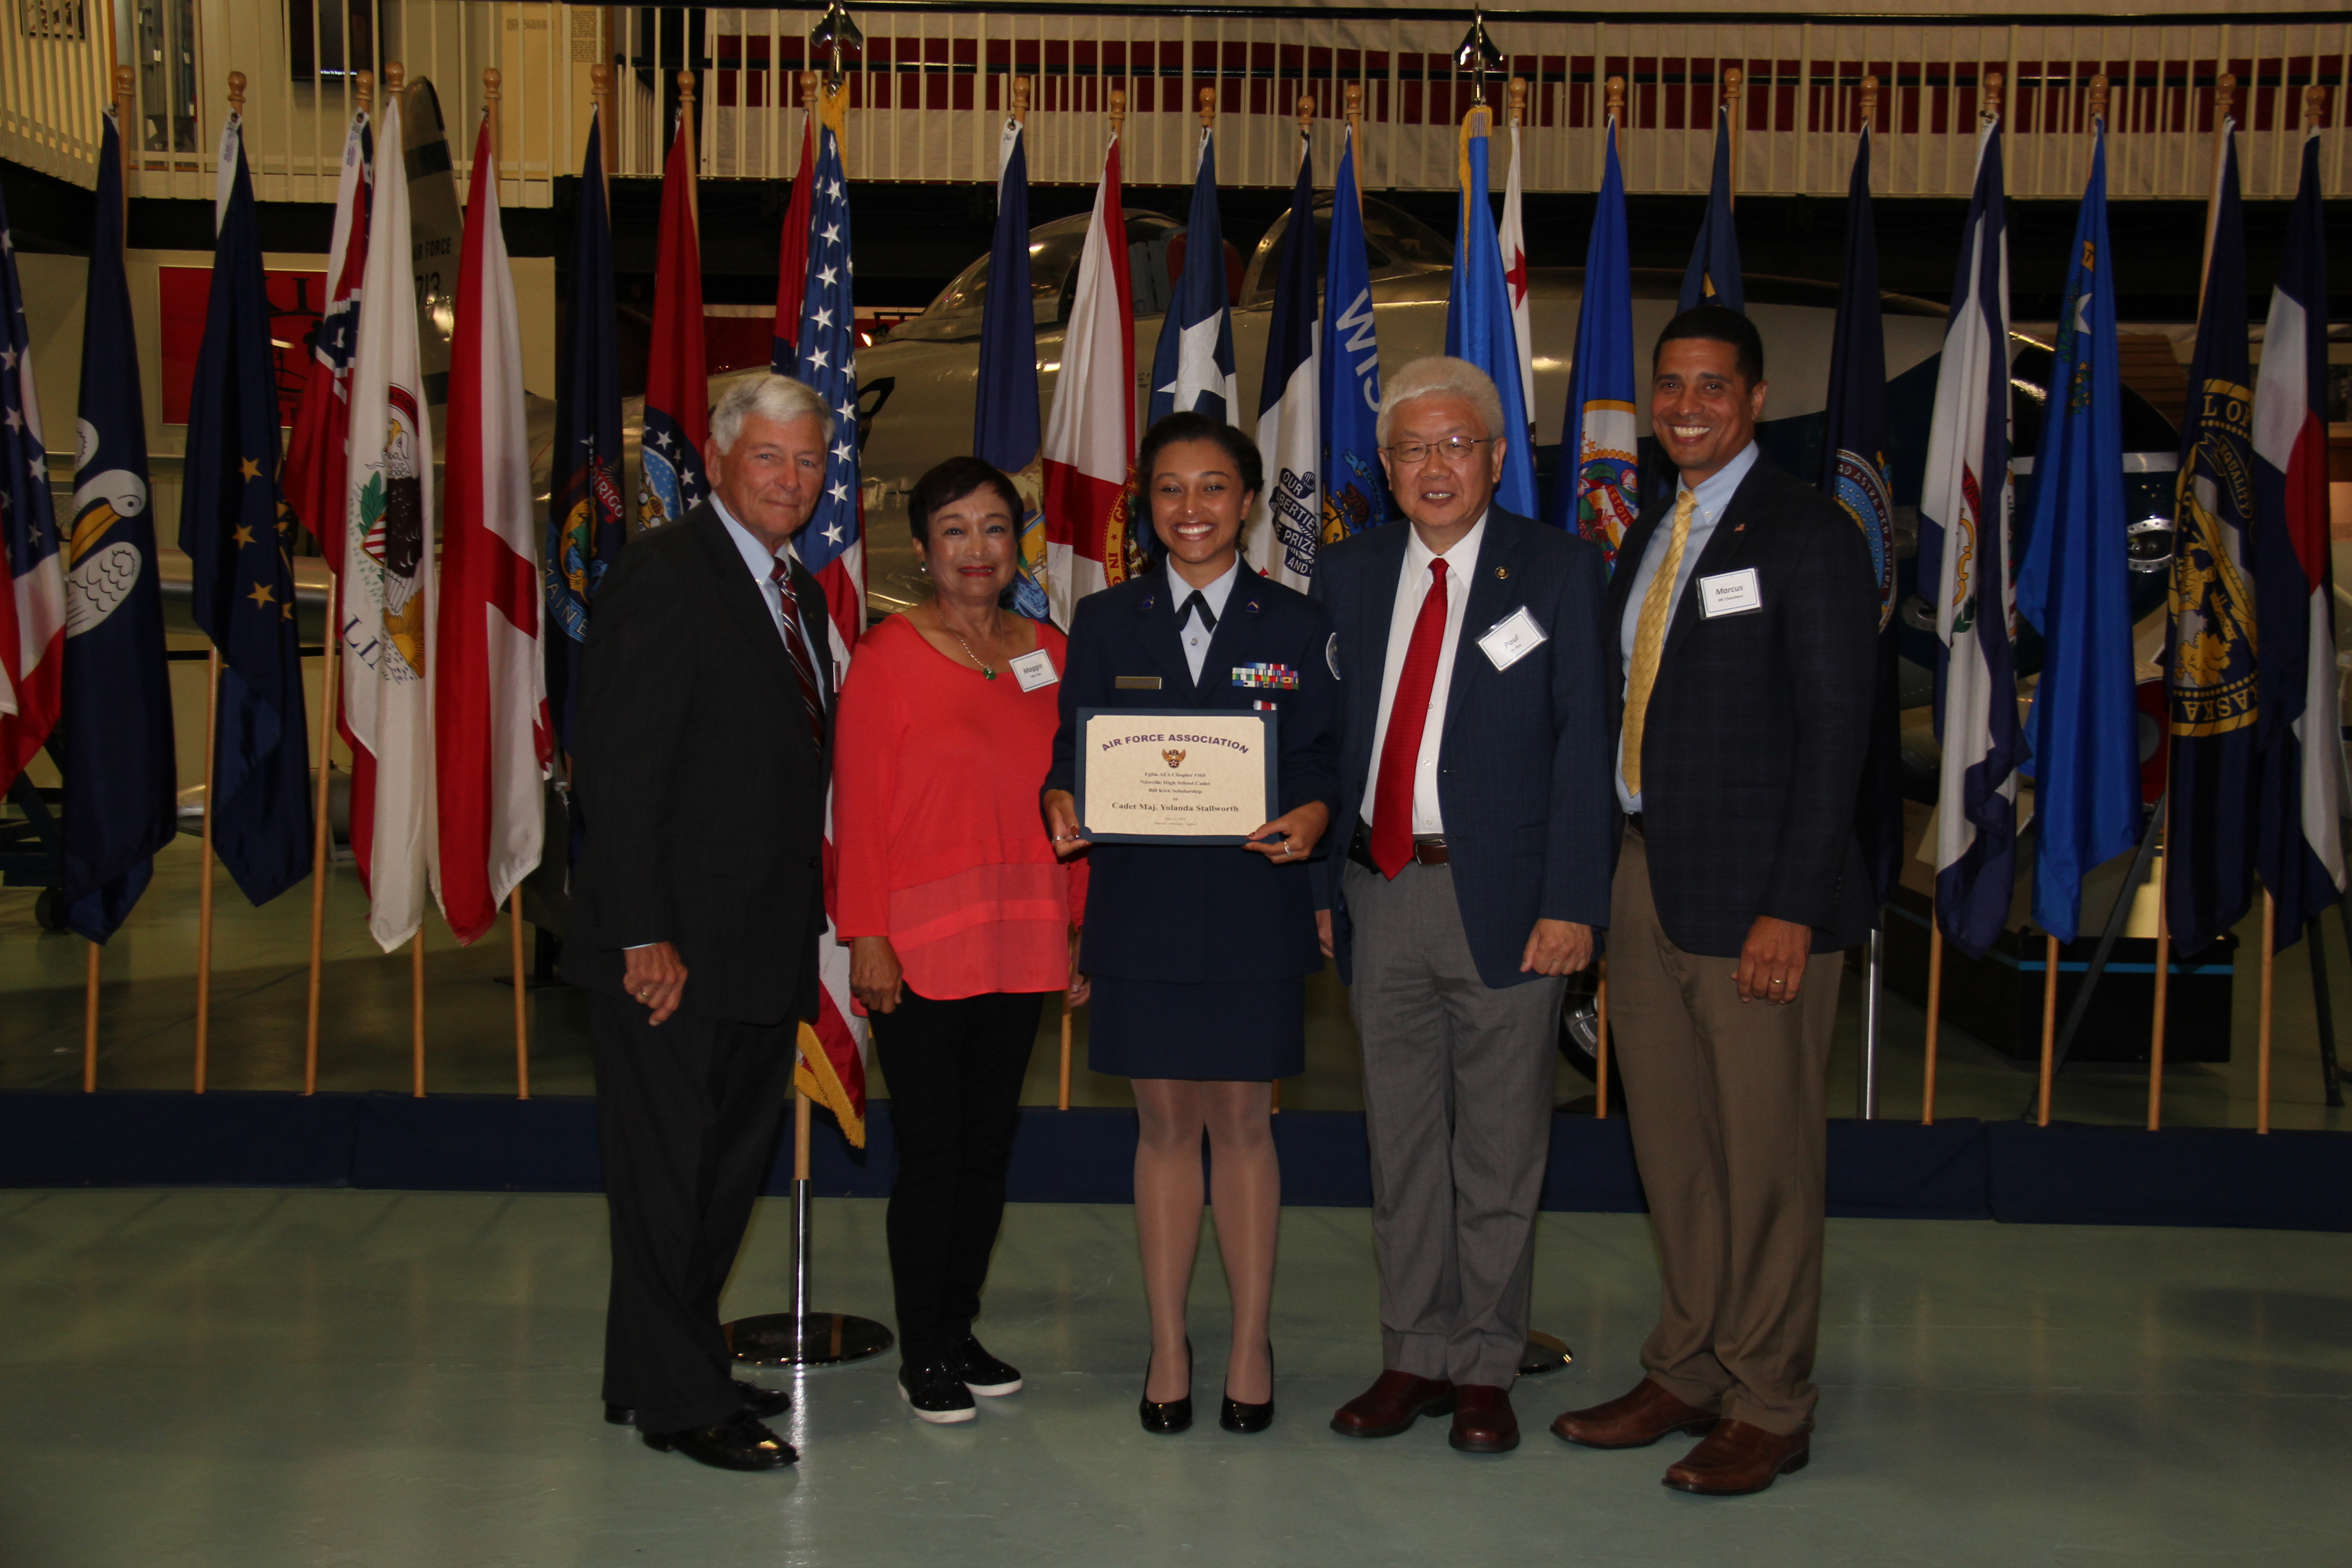 Bill Kirk Scholarship - Cadet Major Yolanda Stallworth, Niceville High School